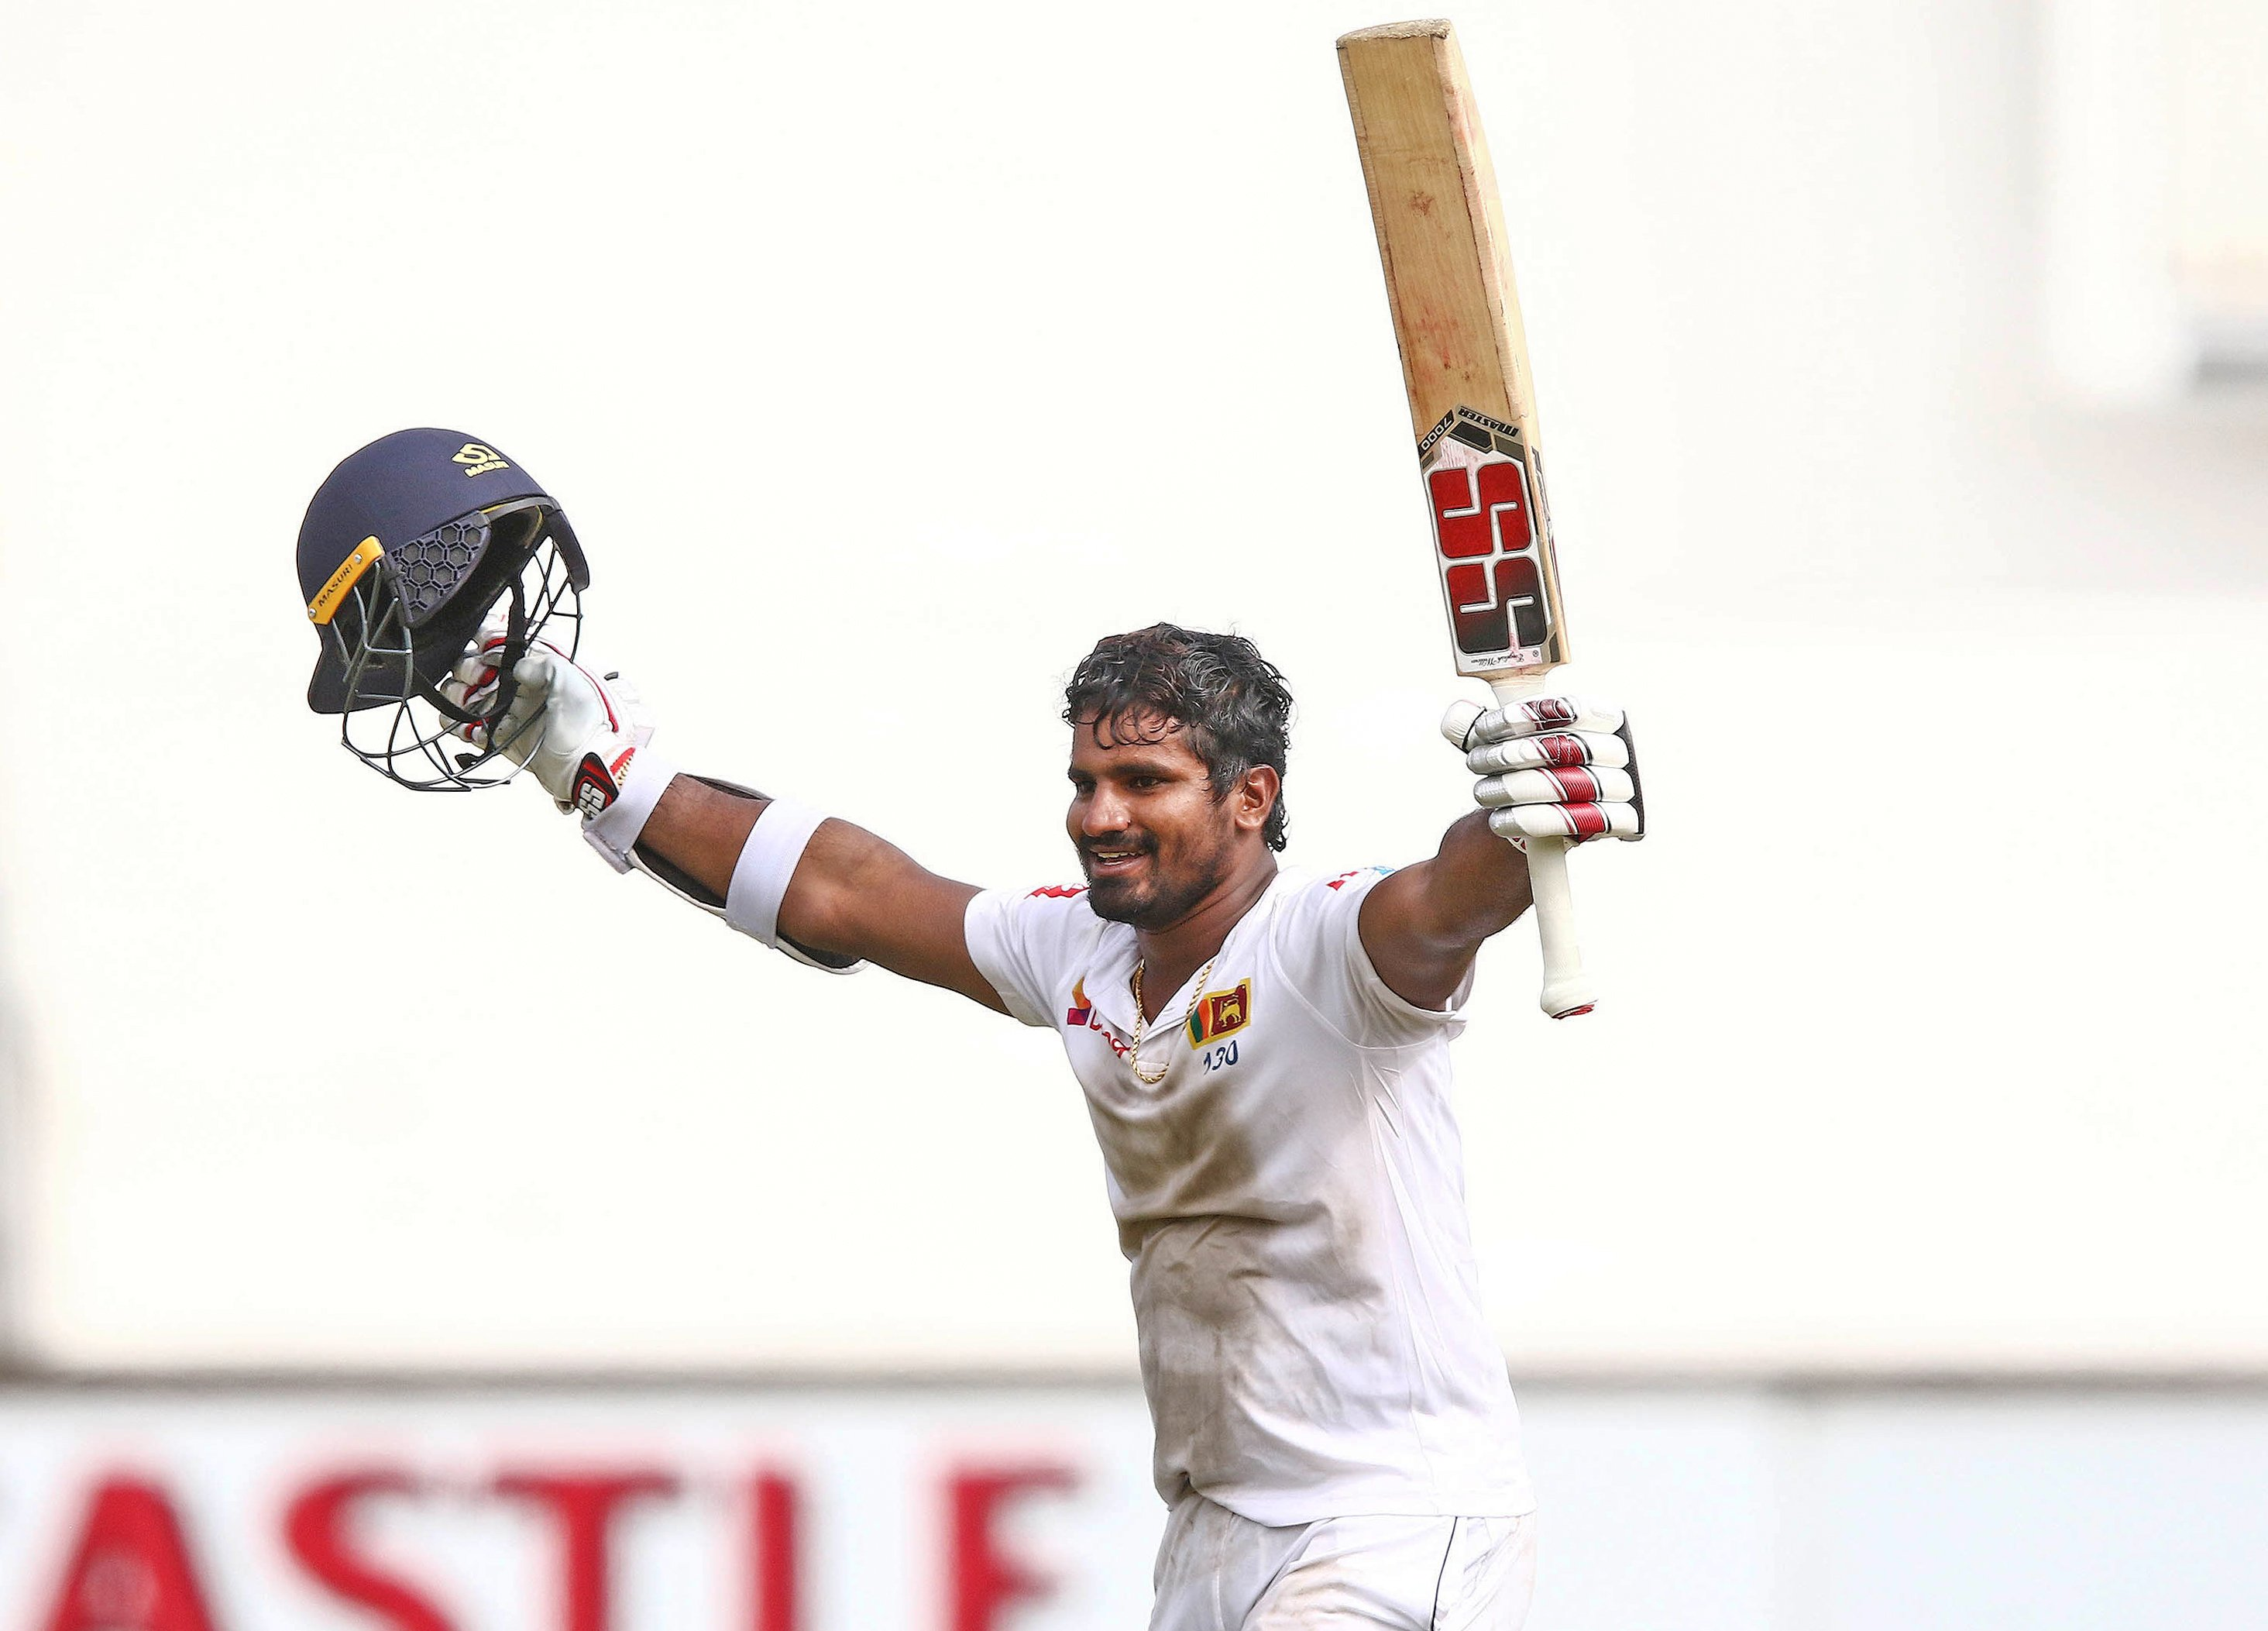 Sri Lanka's Kusal Perera celebrates the victory after hittting the winning runs during the fourth day of the first Cricket Test between South Africa and Sri Lanka at the Kingsmead Stadium in Durban on February 16, 2019.